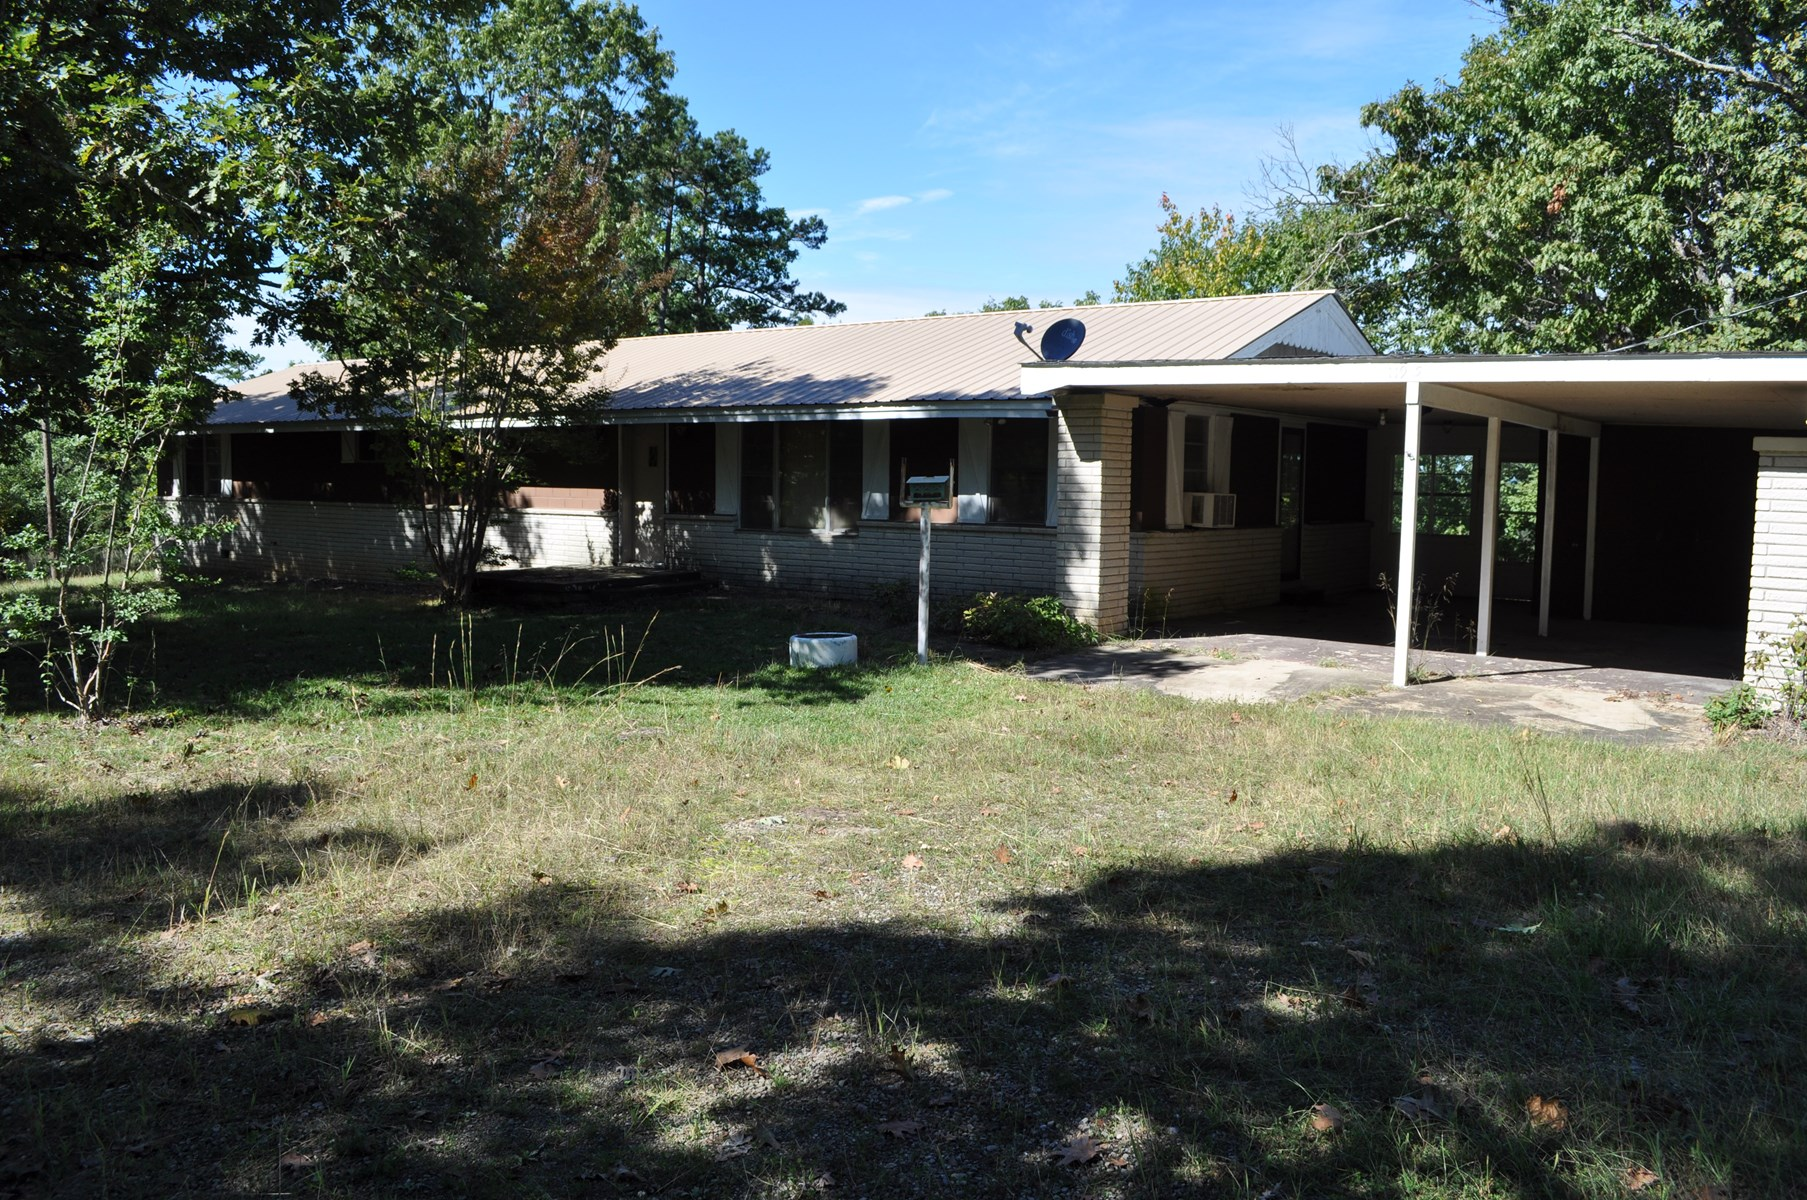 Foreclosed Country Home with Acreage For Sale!!